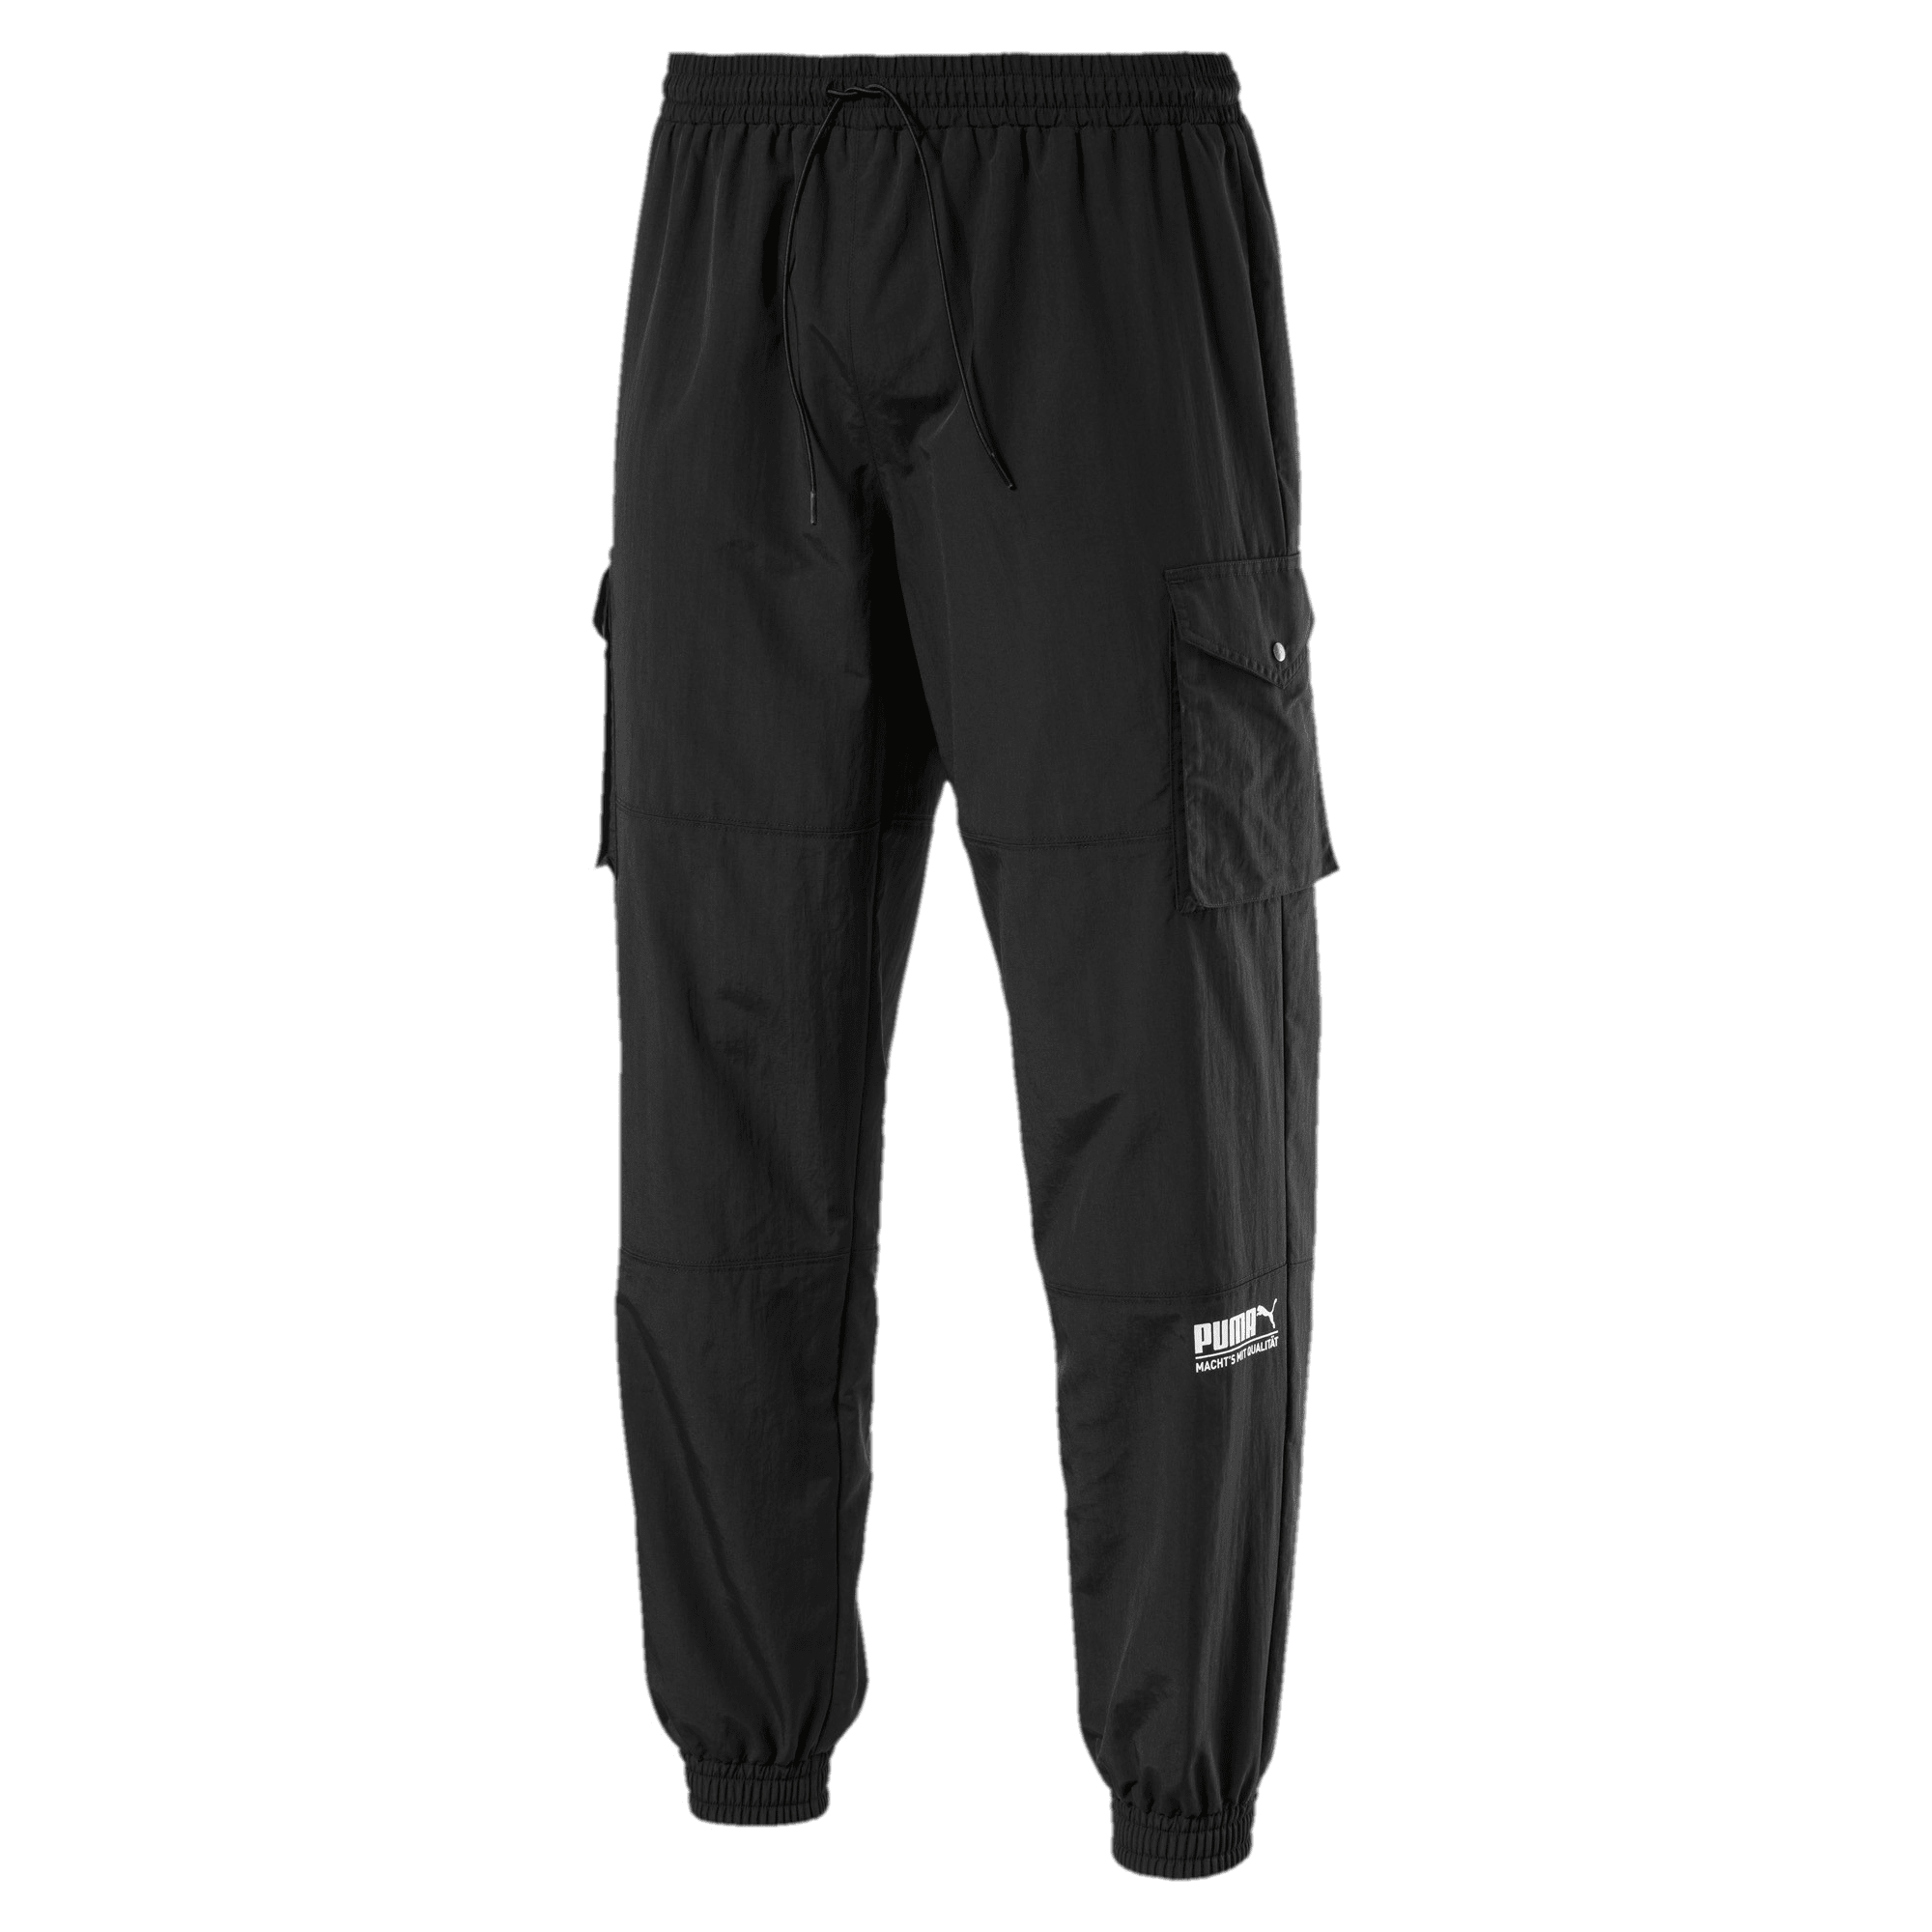 Thumbnail 1 of Sports Fashion Woven Men's Sweatpants, Puma Black, medium